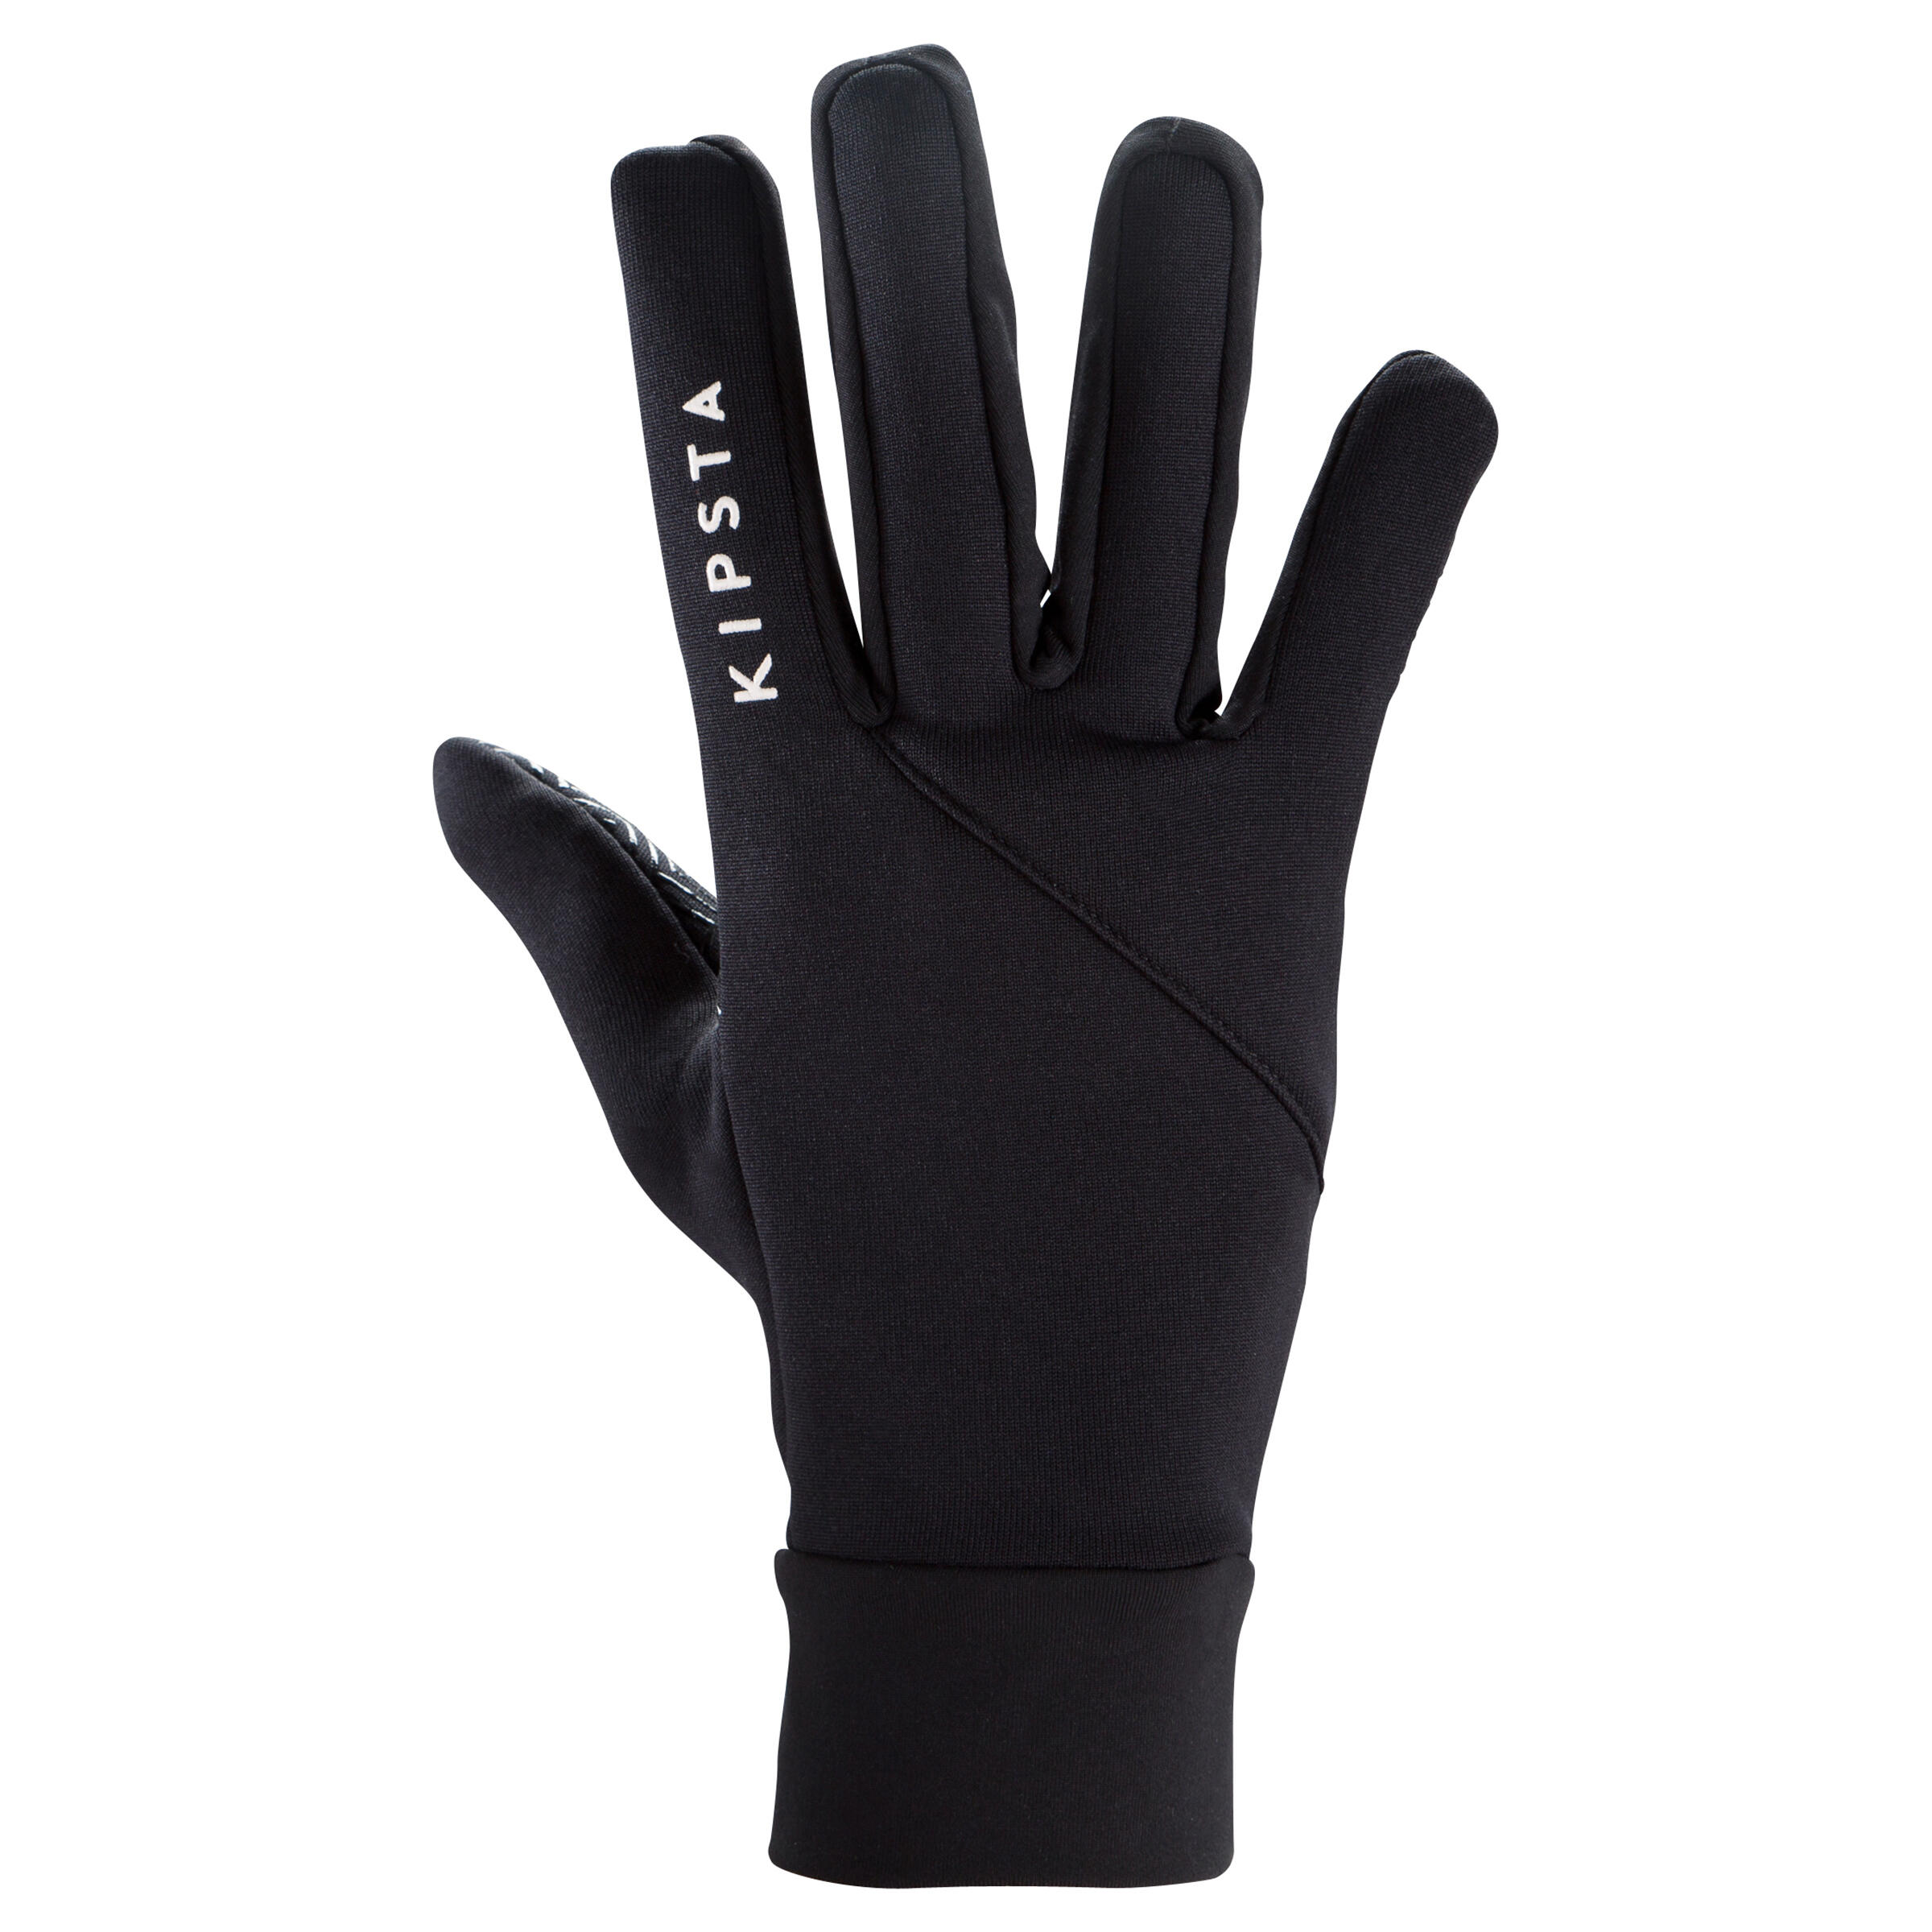 Noirs Adulte 500 500 Gants Keepdry Keepdry Gants Adulte E2IWD9YH